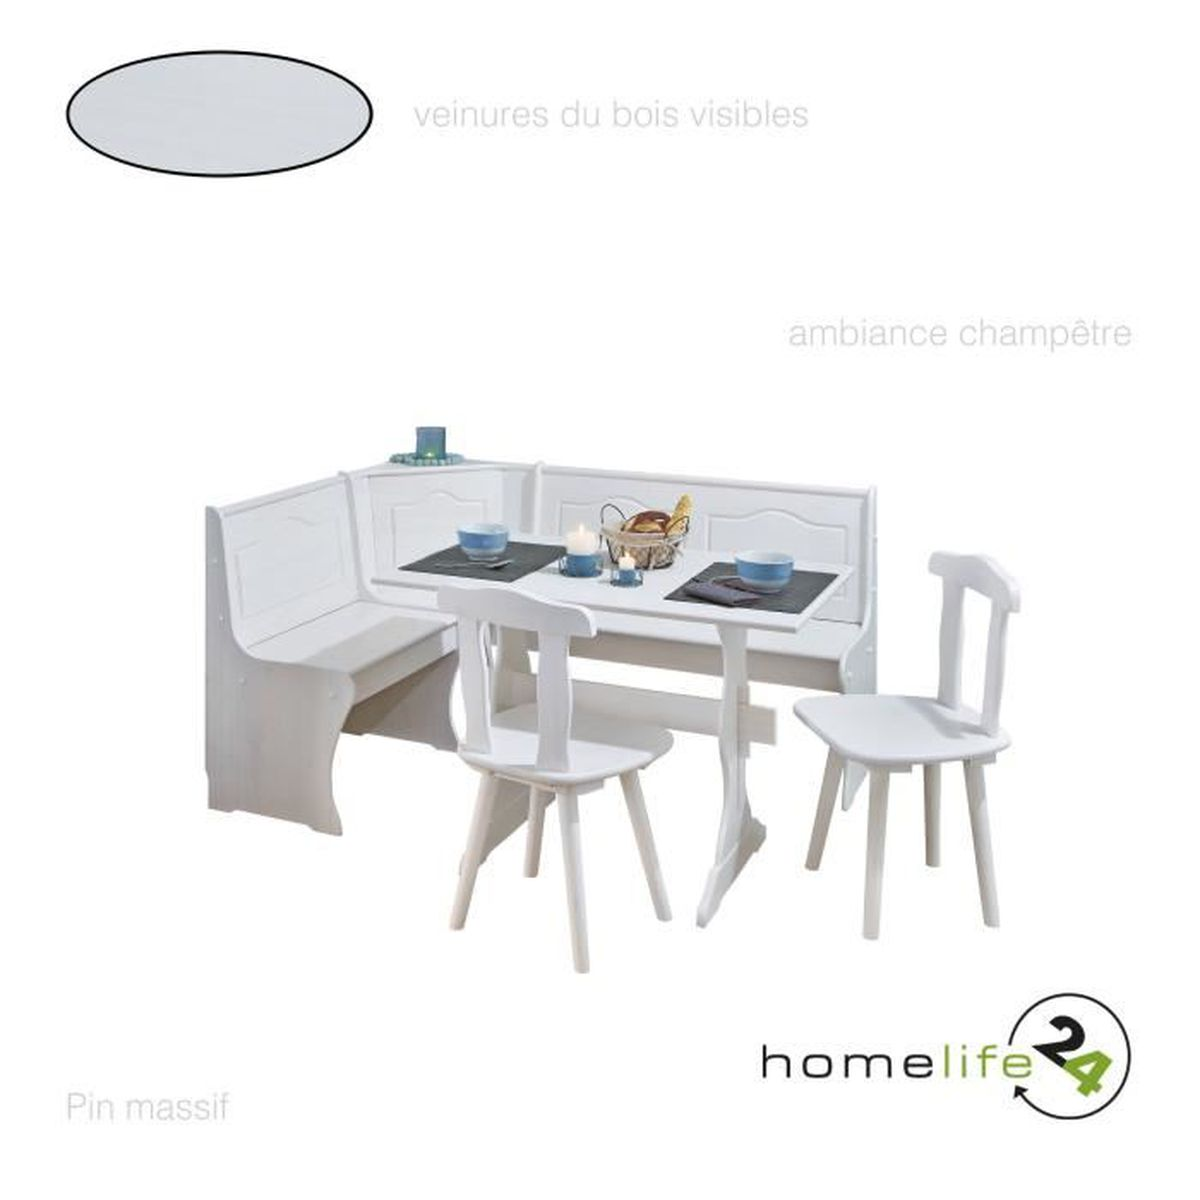 table et banc salle a manger achat vente pas cher. Black Bedroom Furniture Sets. Home Design Ideas